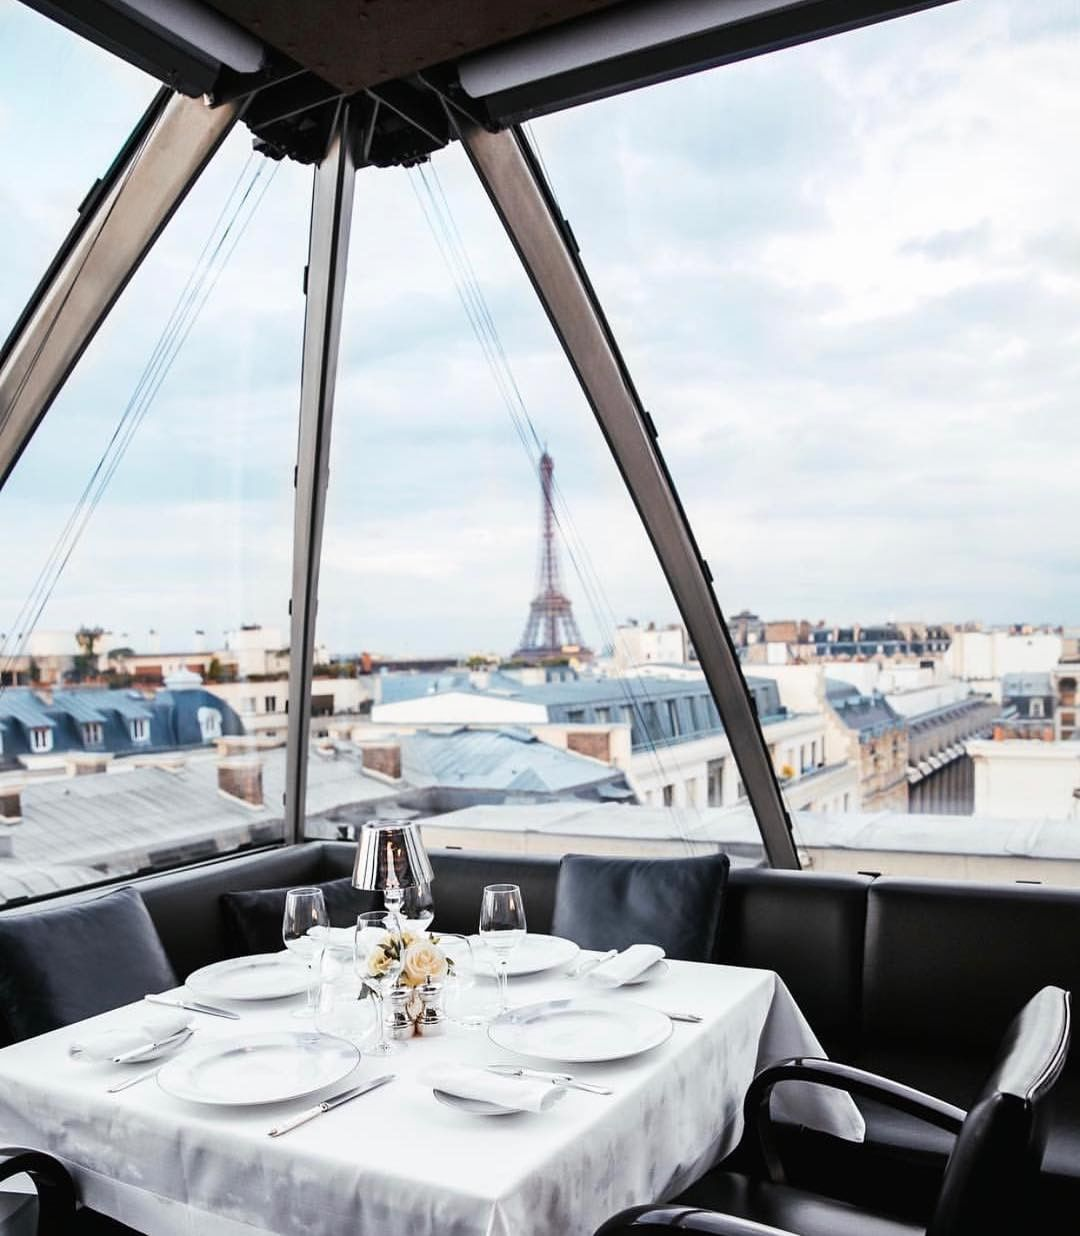 Fabulous Cuisine with iconic Parisian Views - If you're wanting romance, a little glamour and the ultimate Parisian experience - this is your spot. L'Oiseau Blanc, located on the sixth floor of the building and featuring spectacular 360 views, is decorated in reference to 1927 flying aces Charles Nungesser and François Coli - creating that Well Travelled touch we just couldn't resist. The cuisine is certainly among the best France has to offer, with Chef Sidney Redel creating new menus each week based on the current seasonal market. We recommend booking in advance for sunset and watch the city transform from day to night. Coming here on the first night of your trip is a fabulous way to start a visit to Paris, and there is nothing like that magic feeling of seeing the Eiffel Tower light up at the top of each hour.Visit WebsiteParis, FrancePhone: +331 58 126 730Email: OiseauBlancPPR@peninsula.com